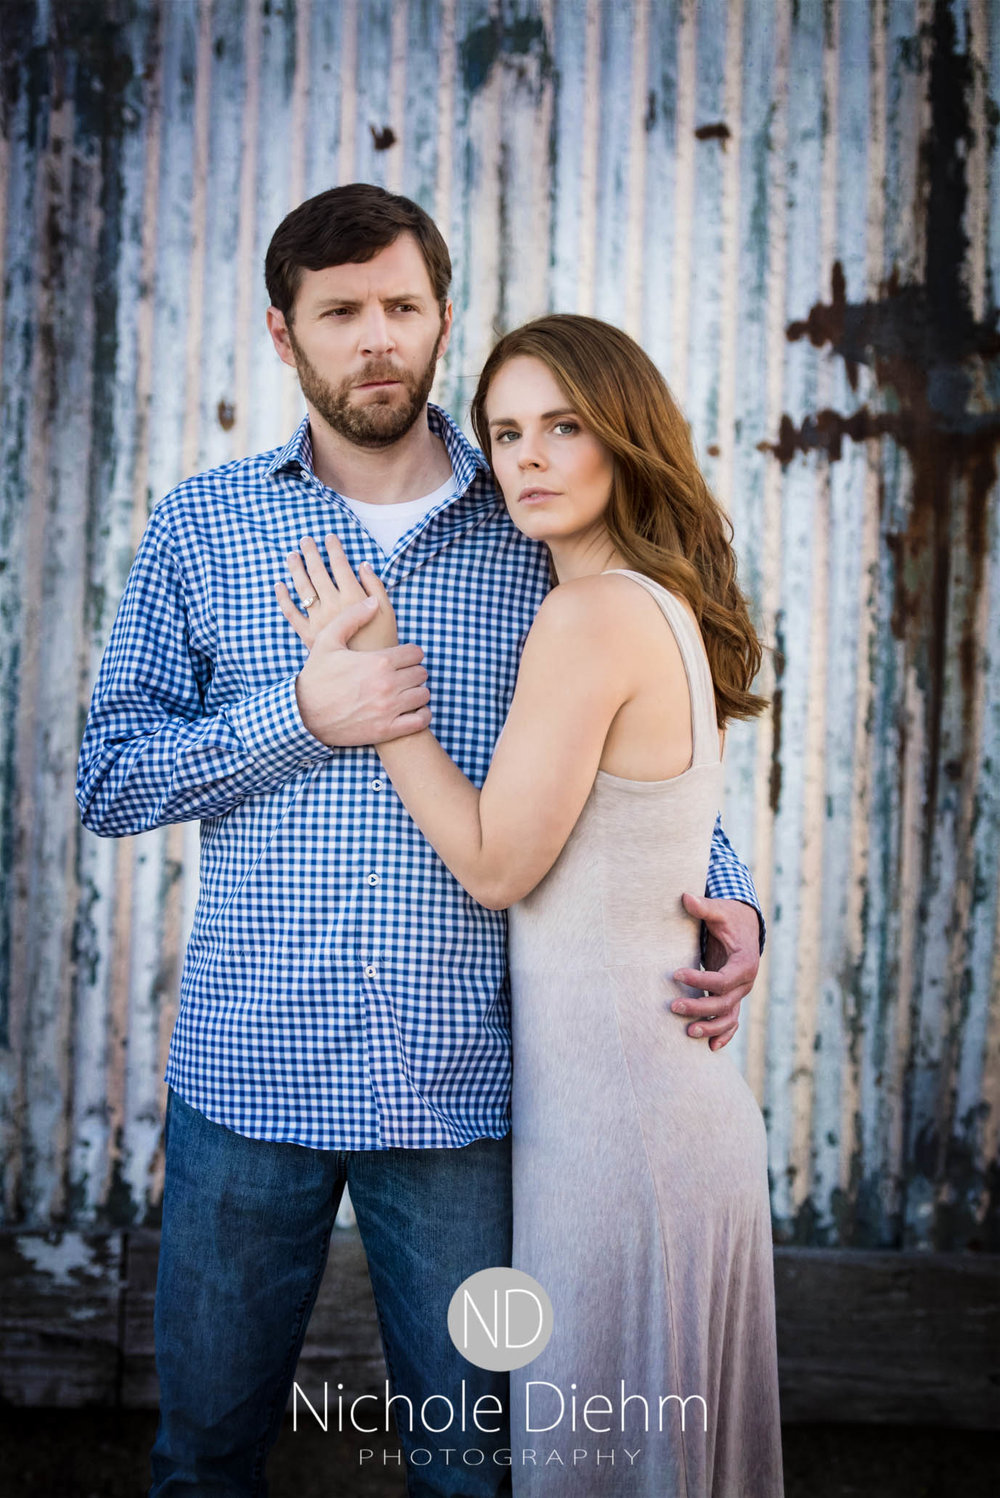 Chris-and-Kathryn-Waterloo-Urban-Downtown-Engagement-Photos_103.jpg